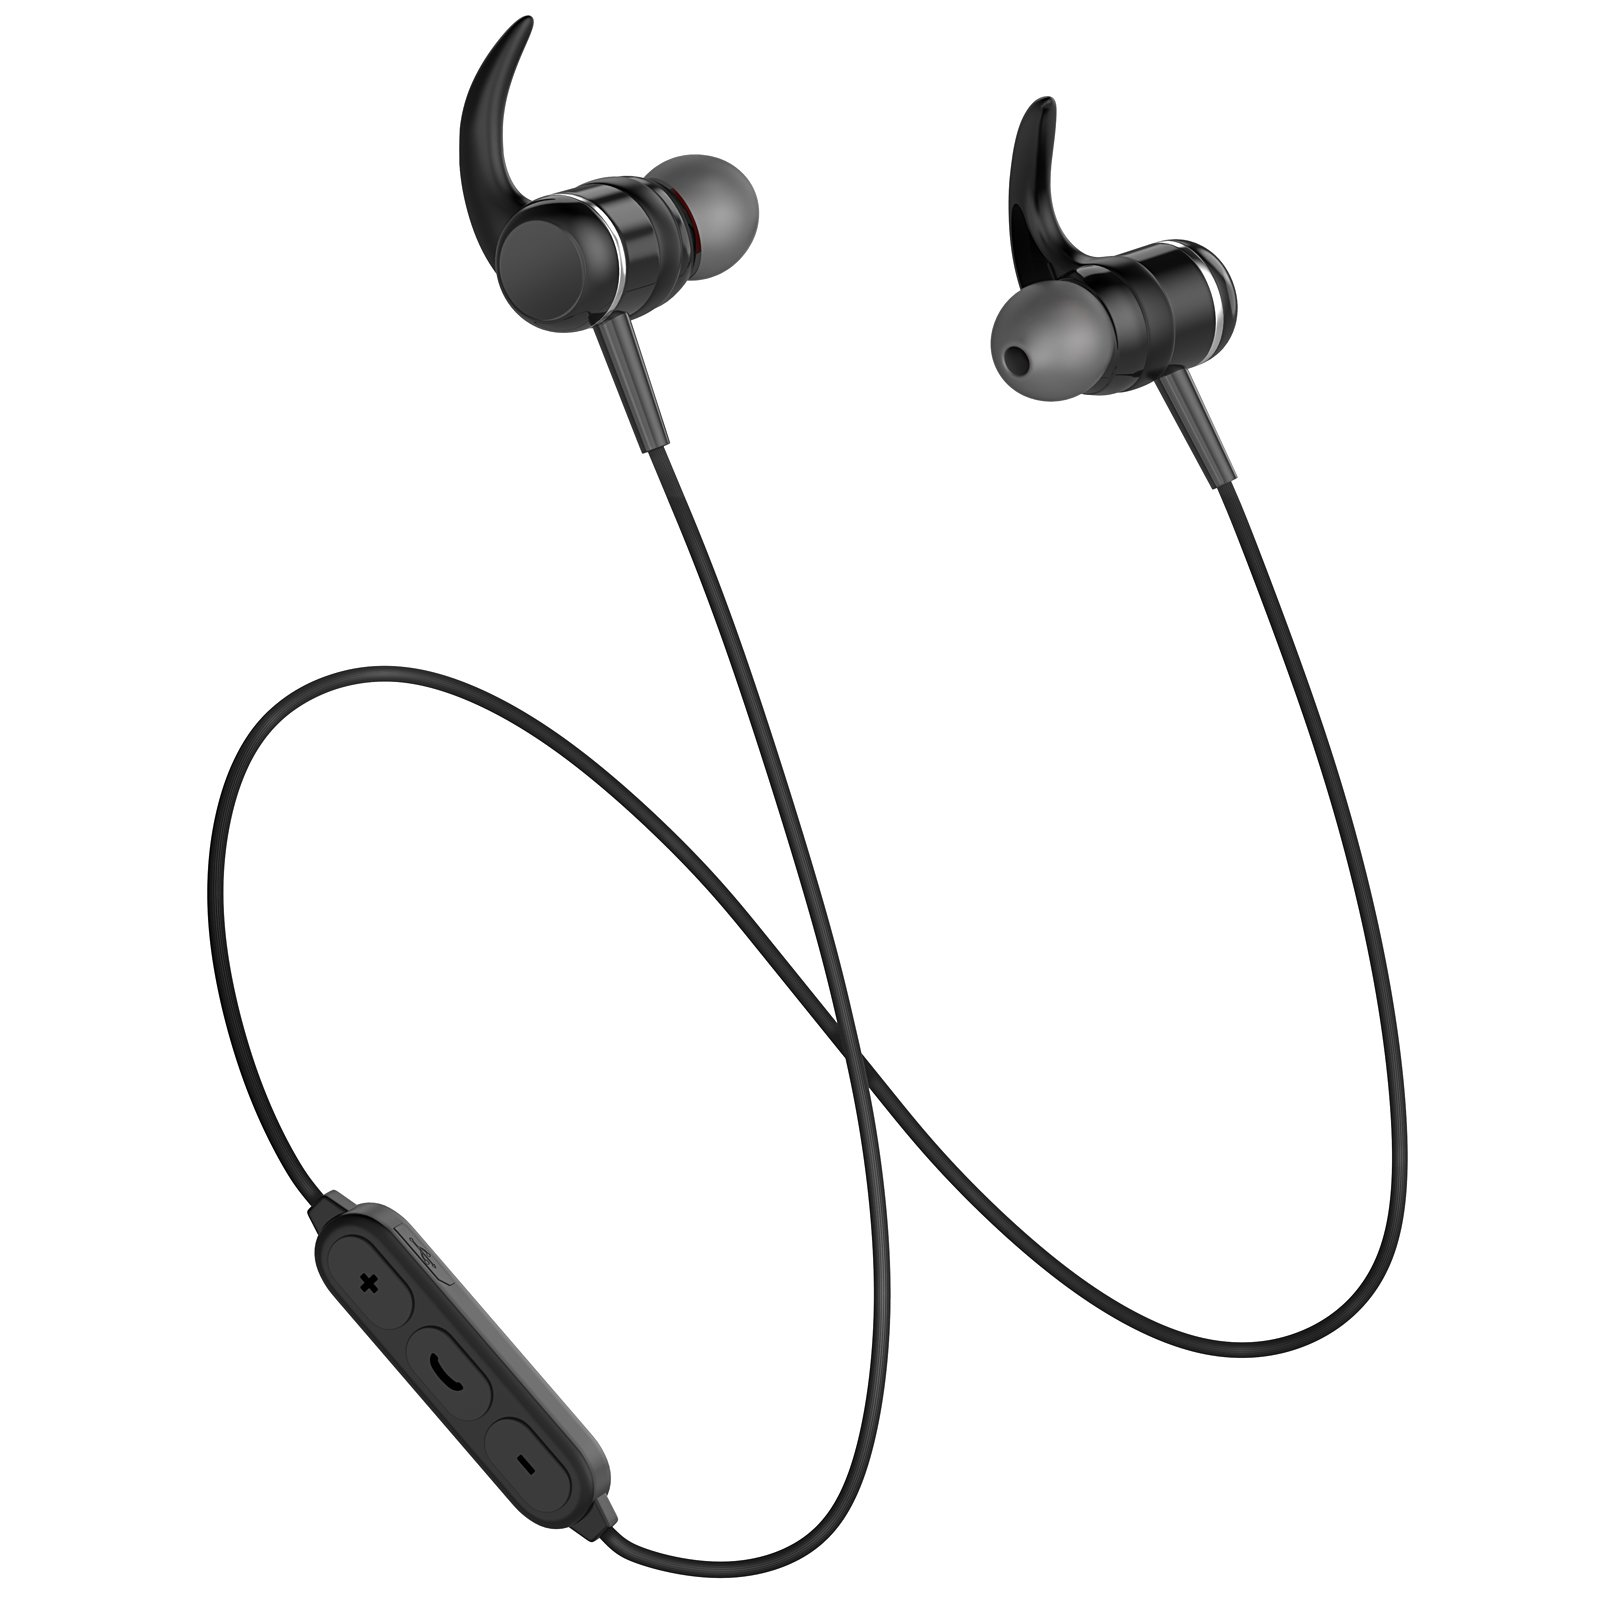 Bluetooth Headphones, Bluetooth 4.1 Earbuds with Built in Mic, Sweatproof Earphones for Running and Workout by LIREION (Image #1)